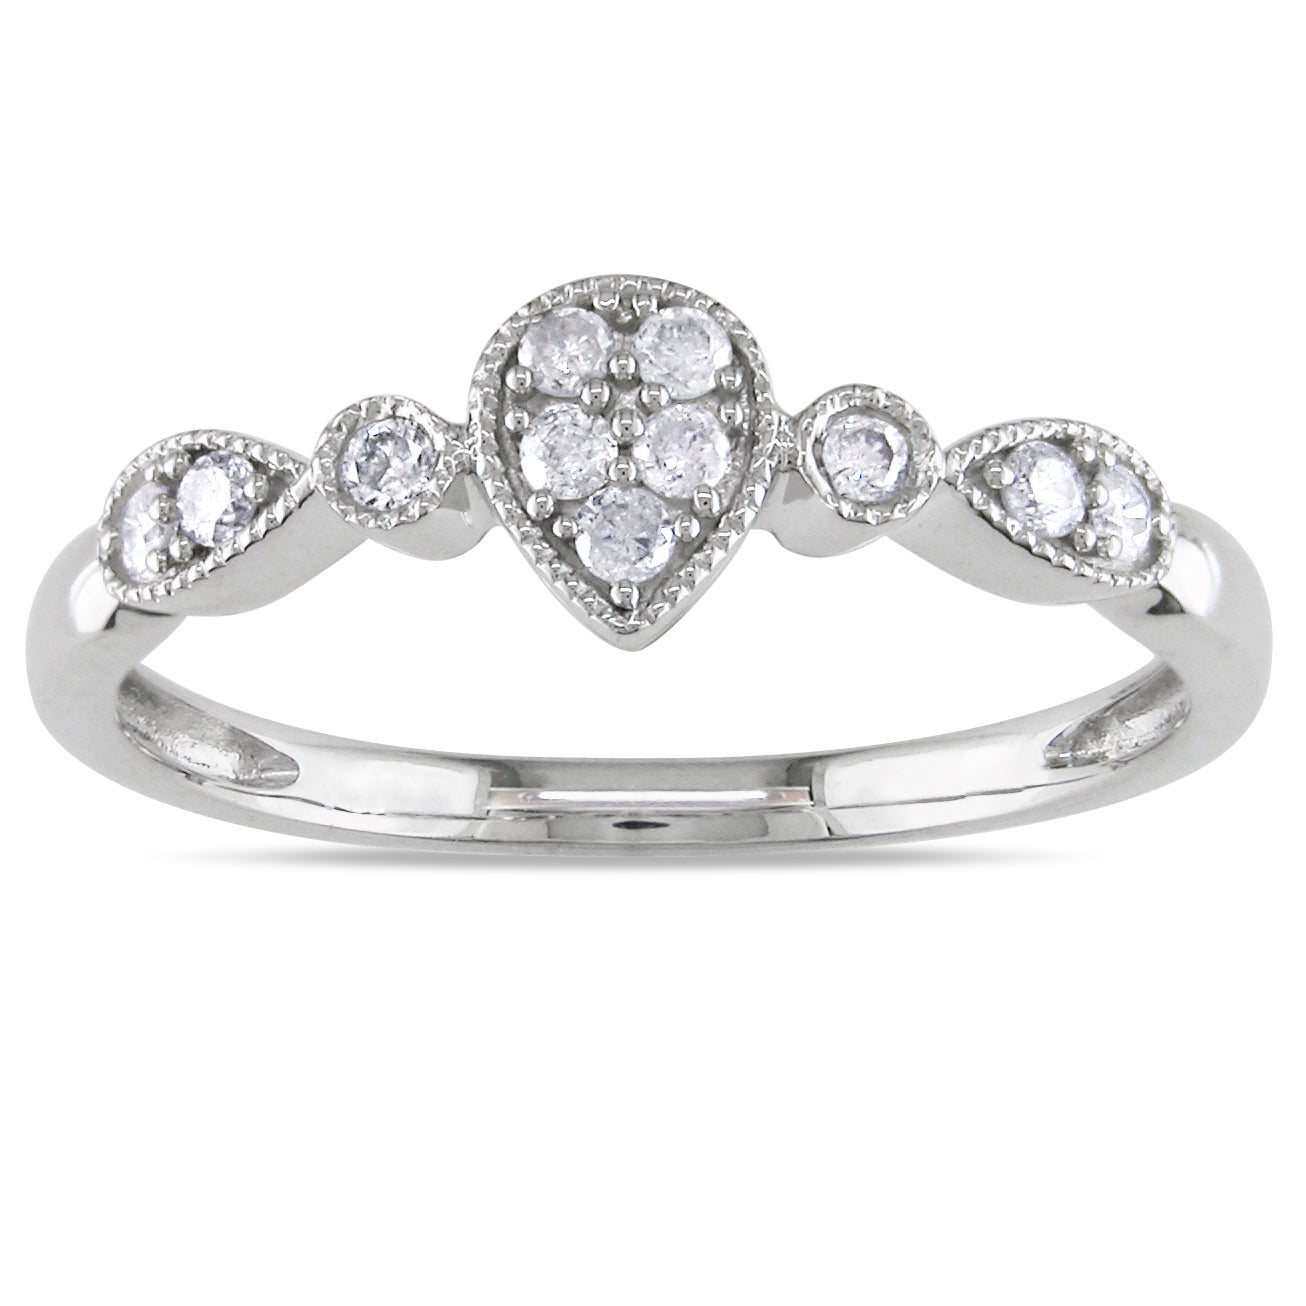 Miadora 10k White Gold 1/6ct TDW Round-cut Diamond Ring (H-I, I2-I3)